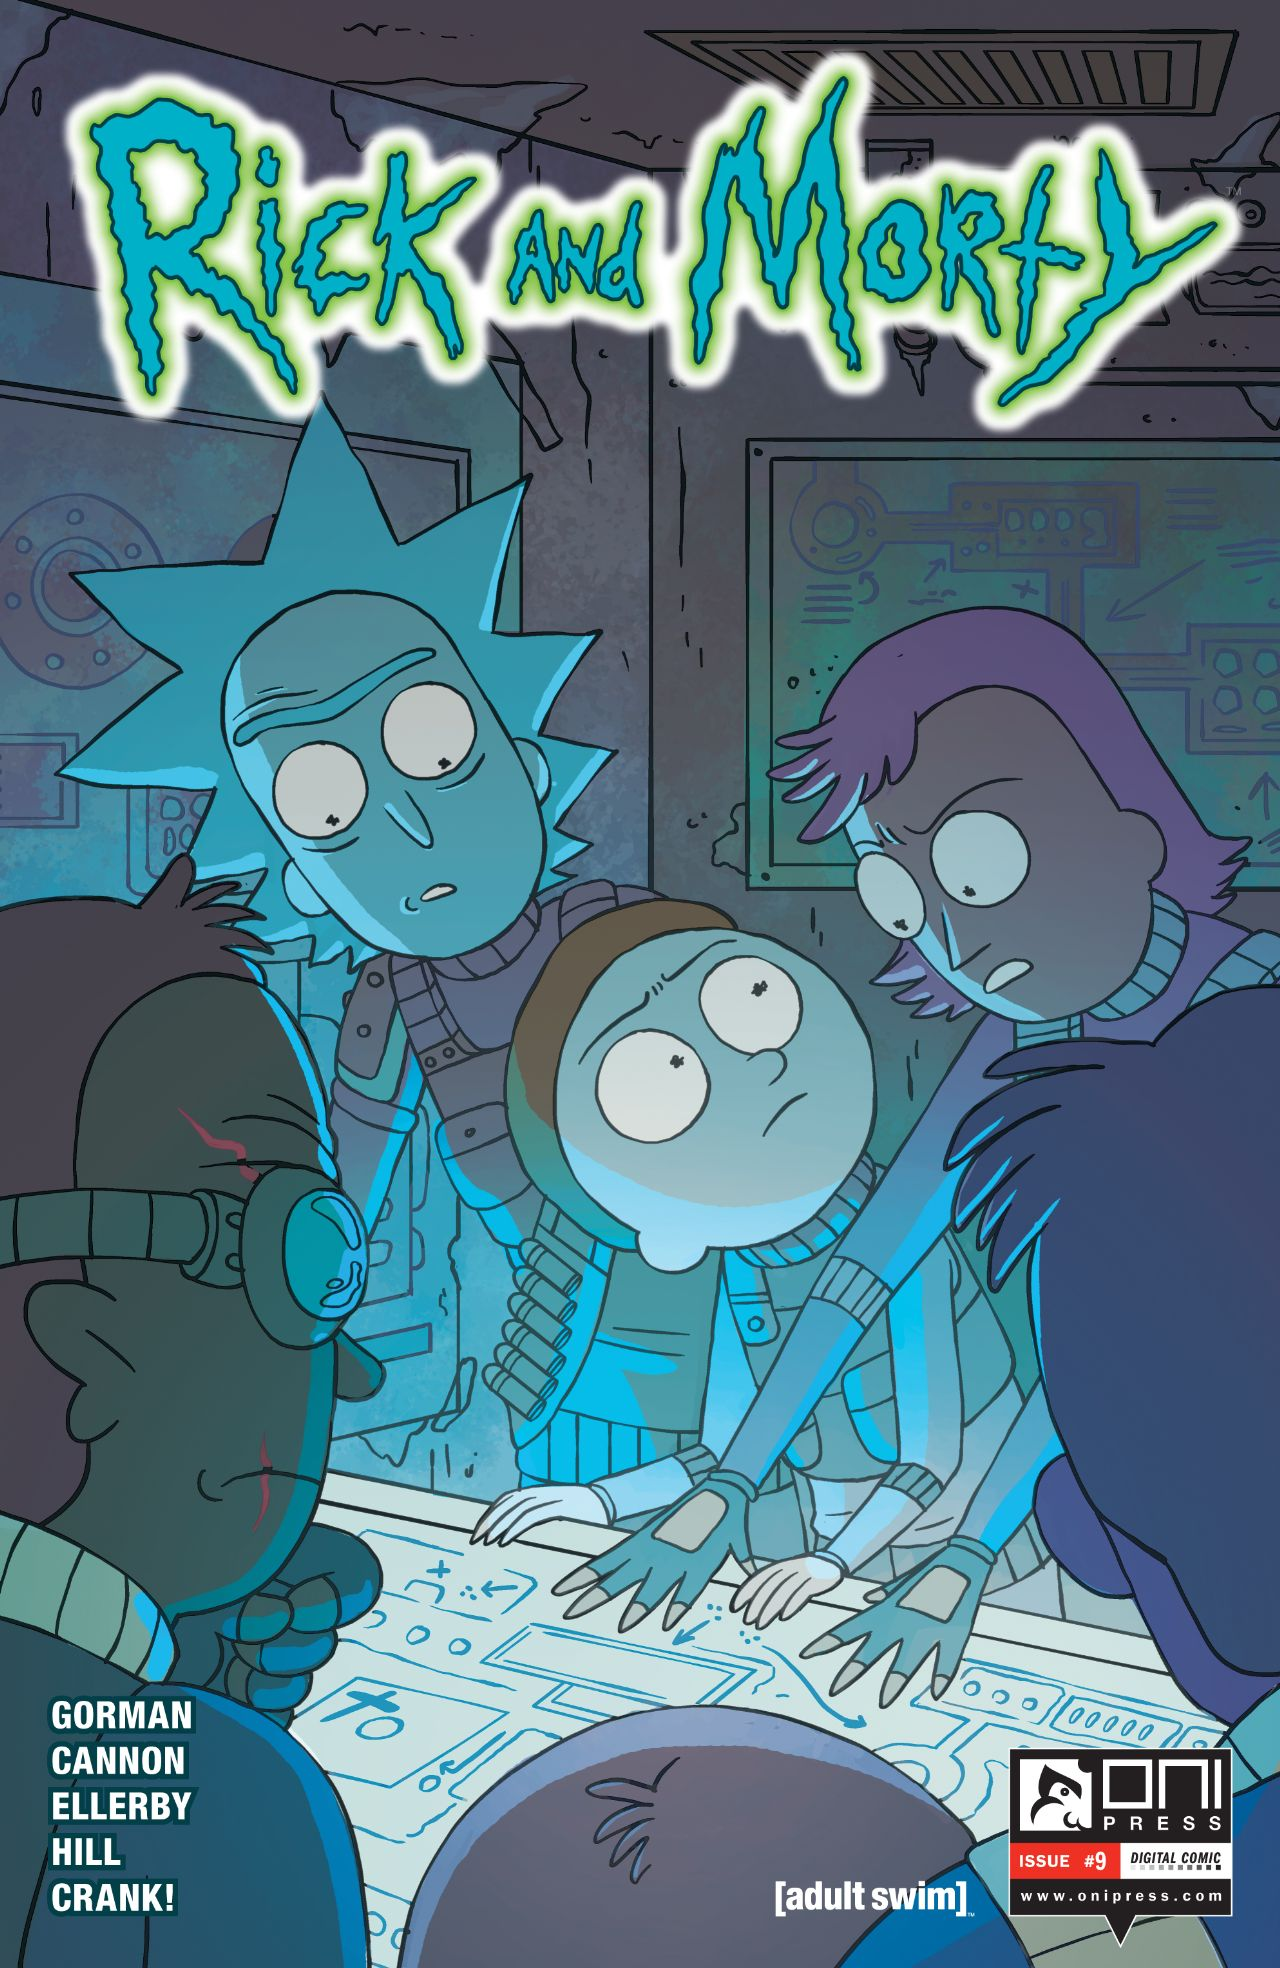 Rick and Morty Issue 9